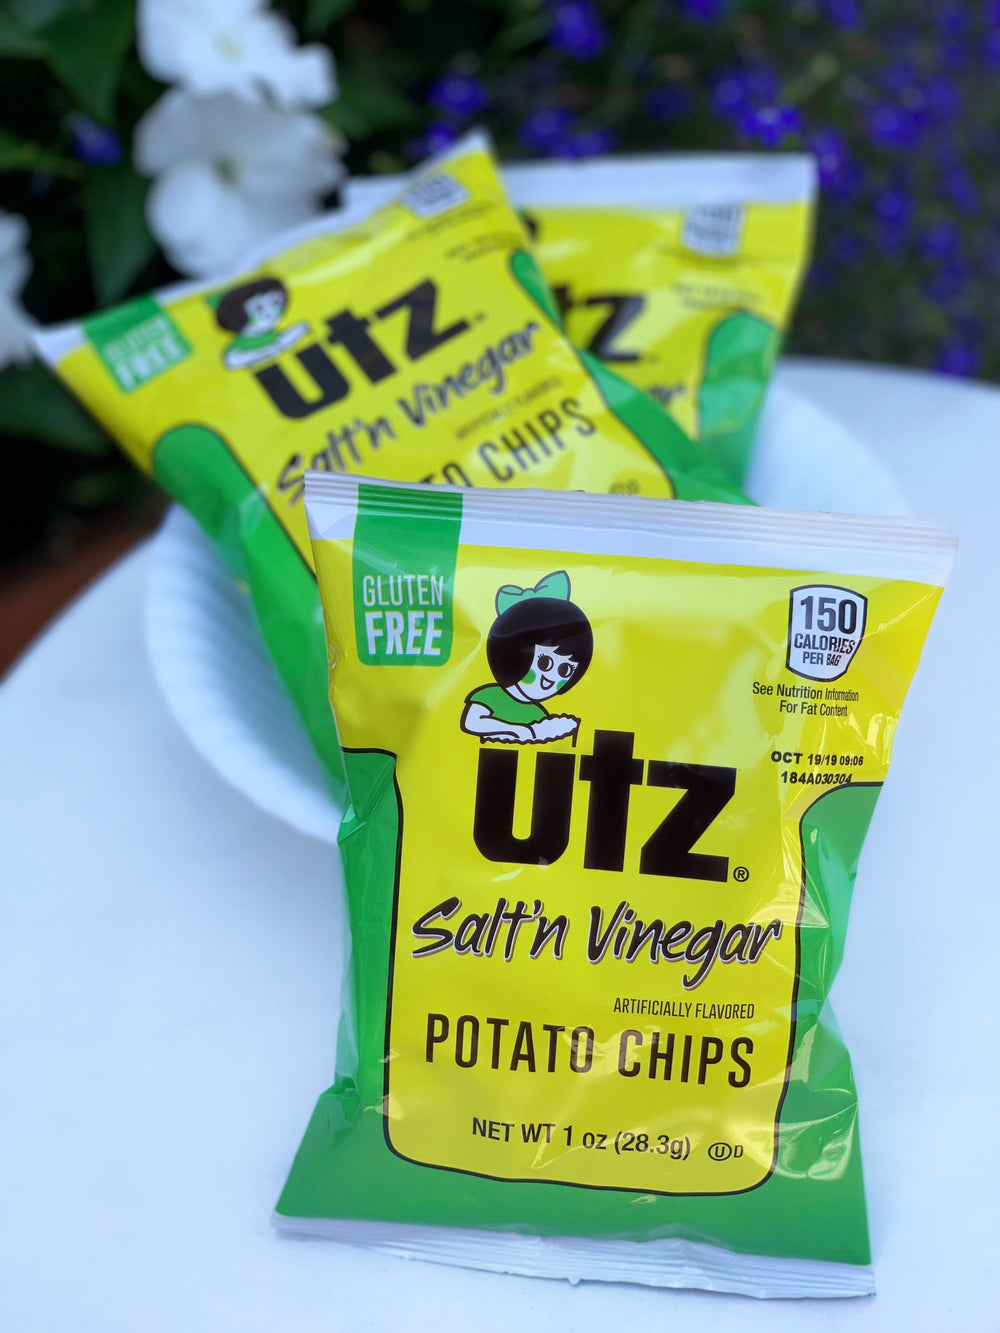 Utz Potato Chips, Salt & Vinegar 1 oz. 60 count Variety Packs And Single Serve Utz